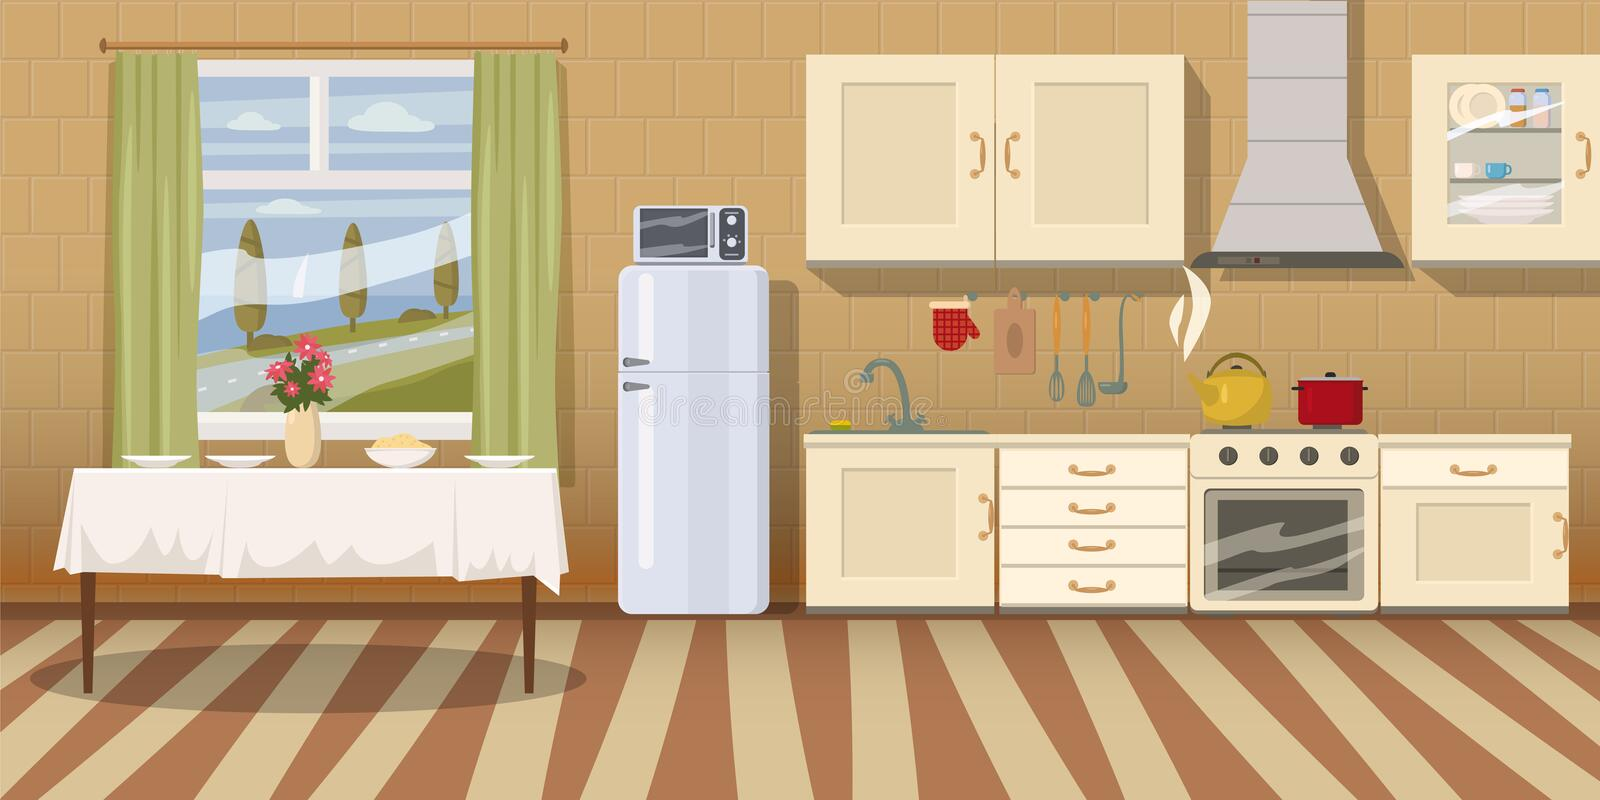 Kitchen with furniture. Cozy kitchen interior with table, stove, cupboard, dishes and fridge. Cartoon style vector royalty free illustration